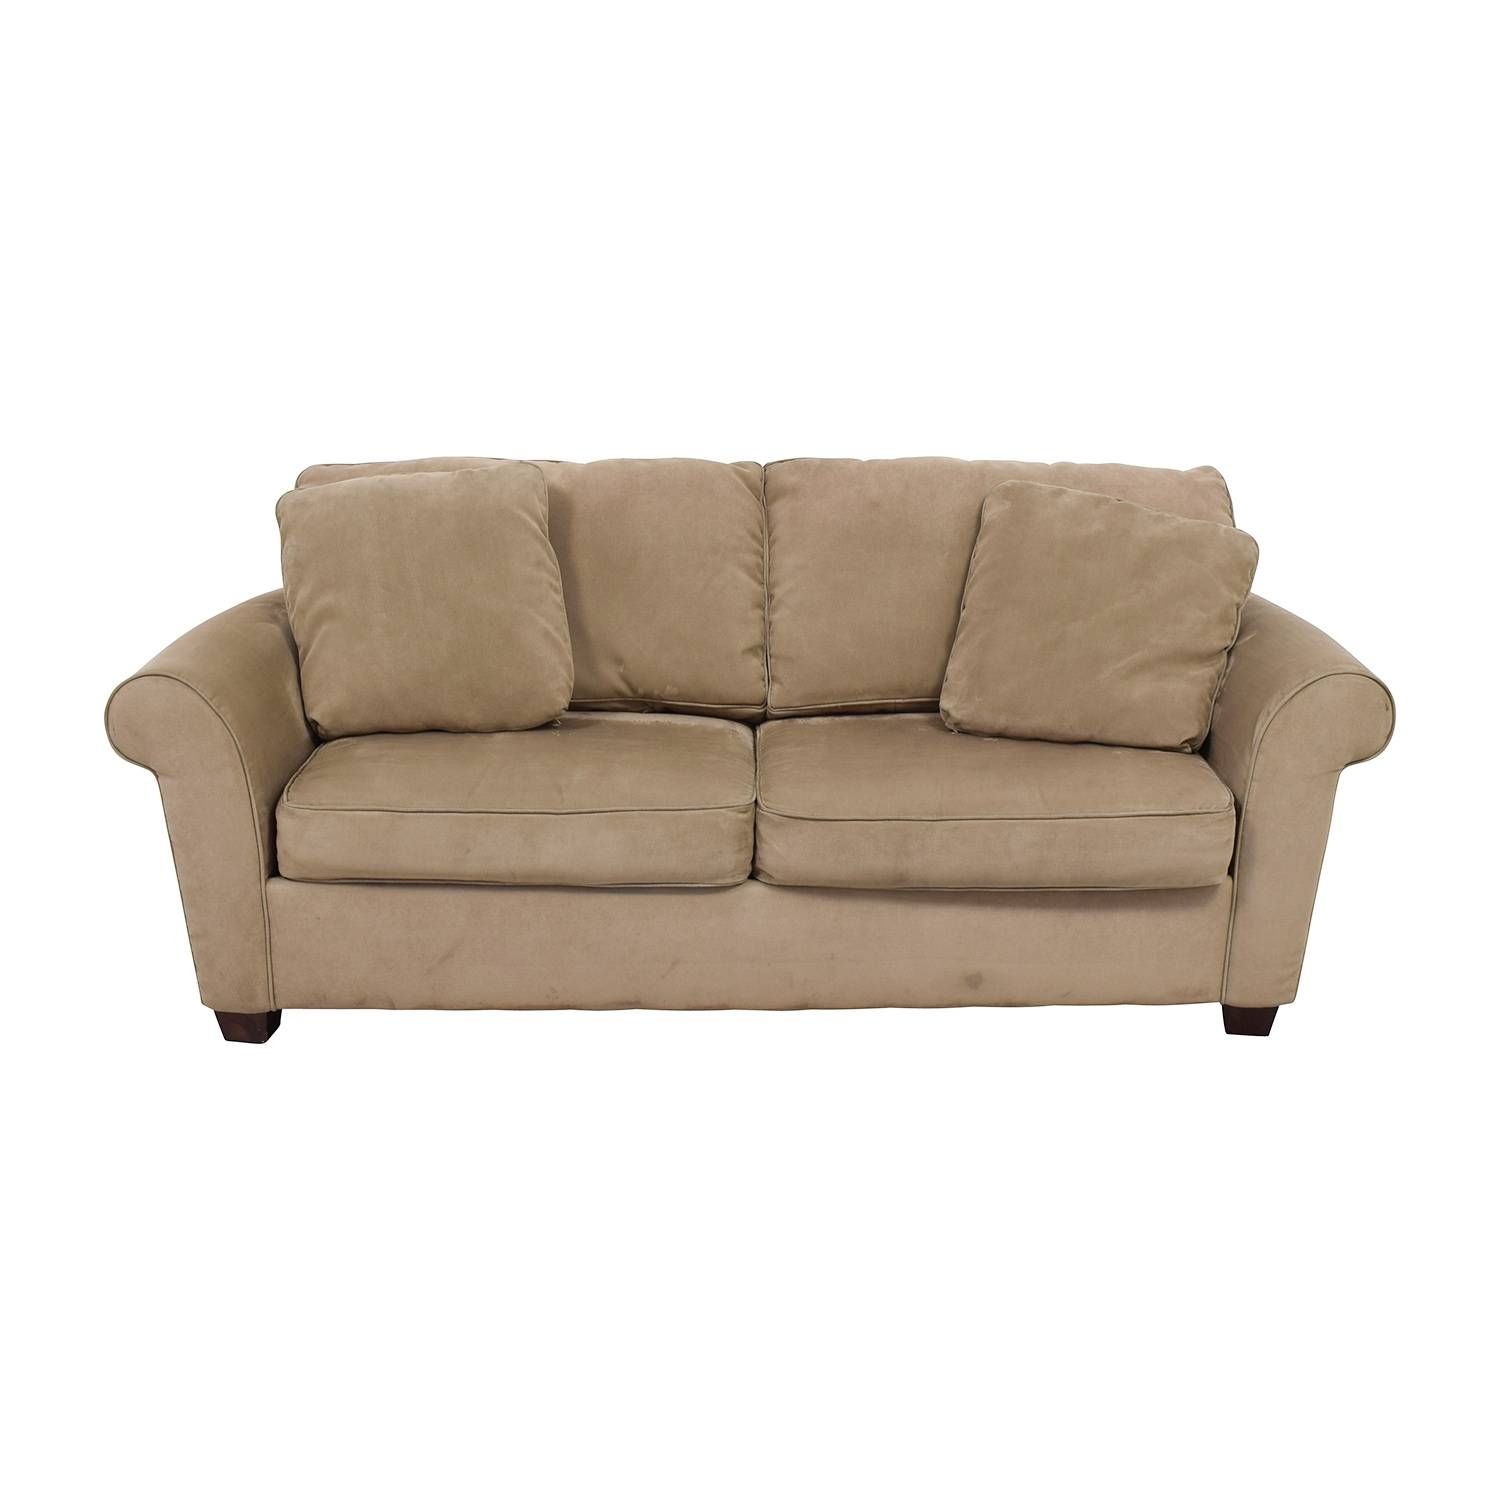 70% Off - Bauhaus Bauhaus Microfiber Tan Oversized Couch / Sofas for Bauhaus Sleeper Sofa (Image 4 of 30)